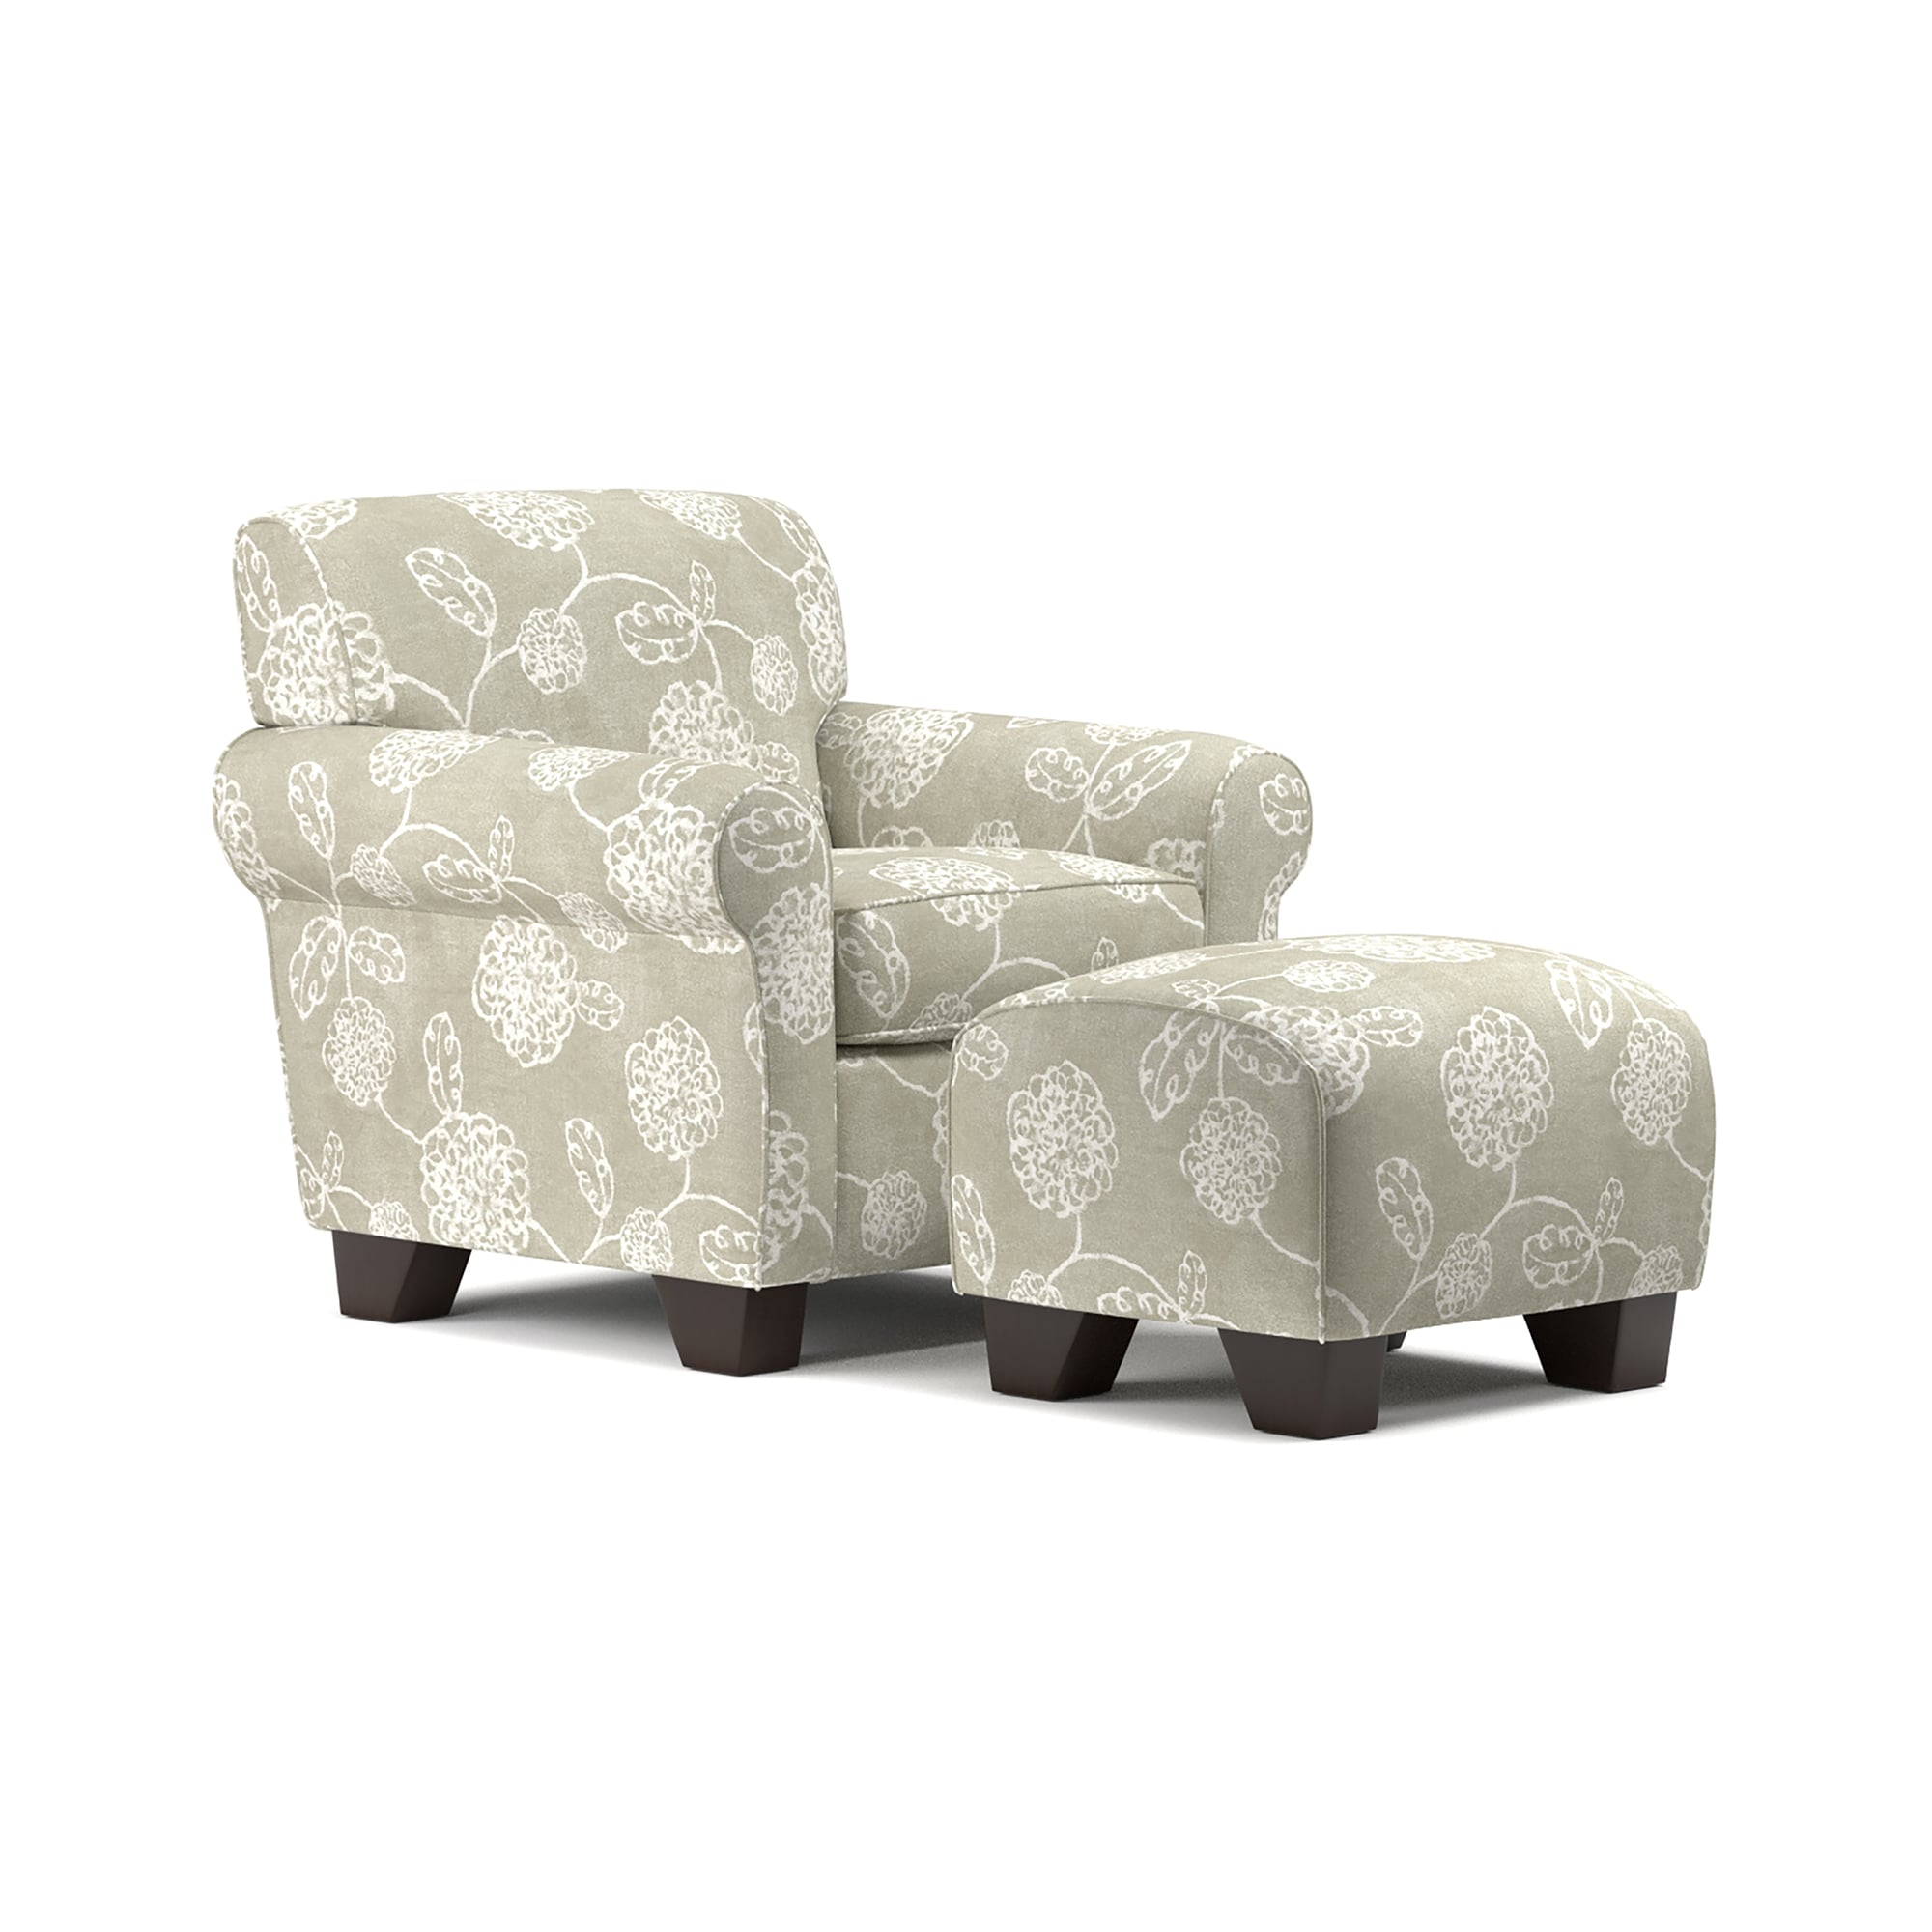 chair bedroom furniture have brown ottoman of upholstered set arm size swivel you oversized sets full rocking must room and half club ottomans leather overstuffed that target overstock chairs elegant with living armchair